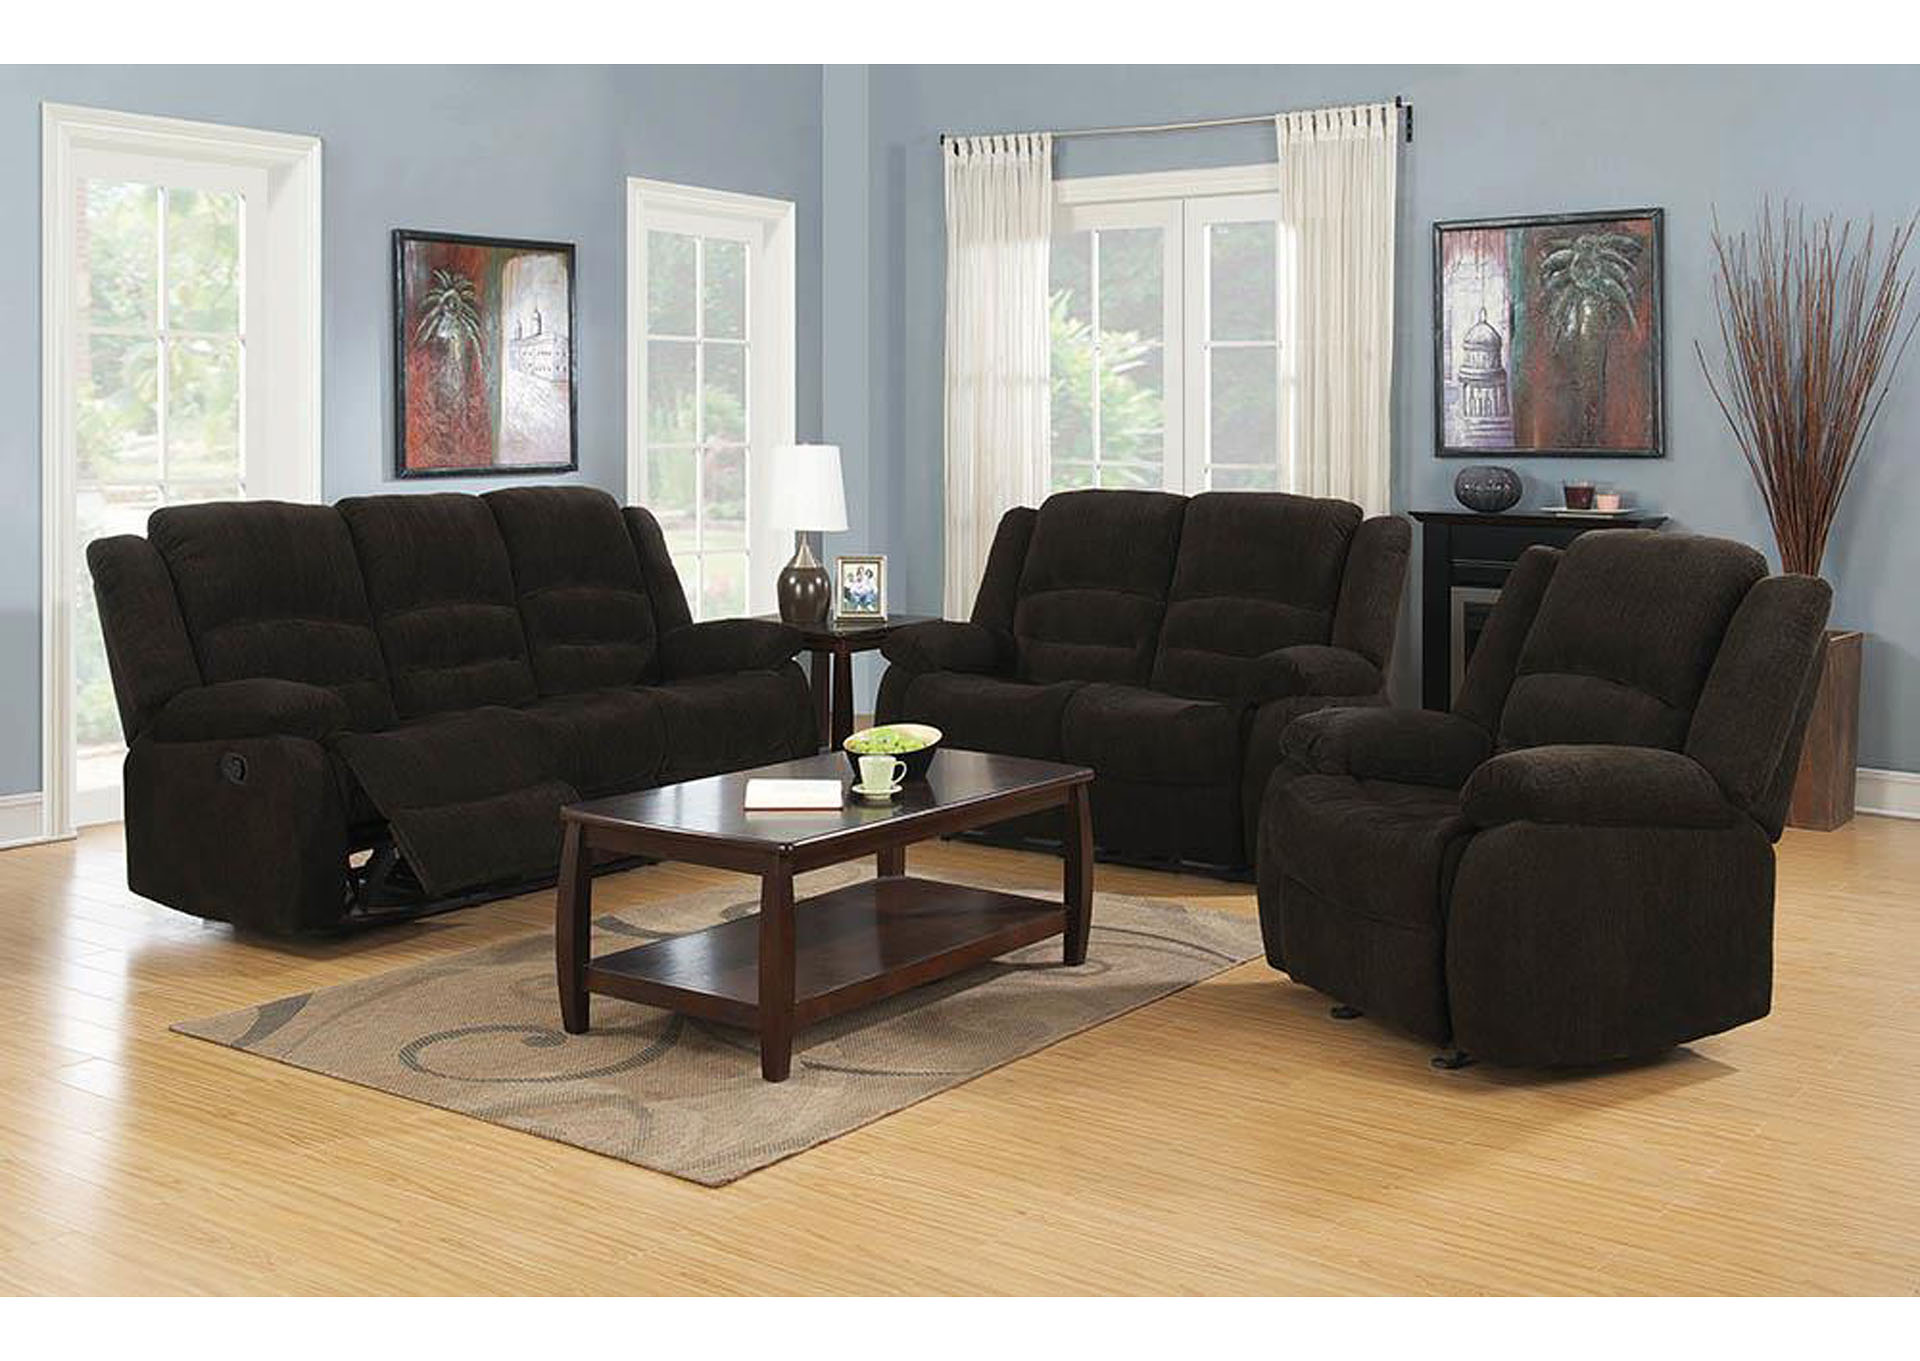 Gordon Dark Brown Motion Sofa,Coaster Furniture